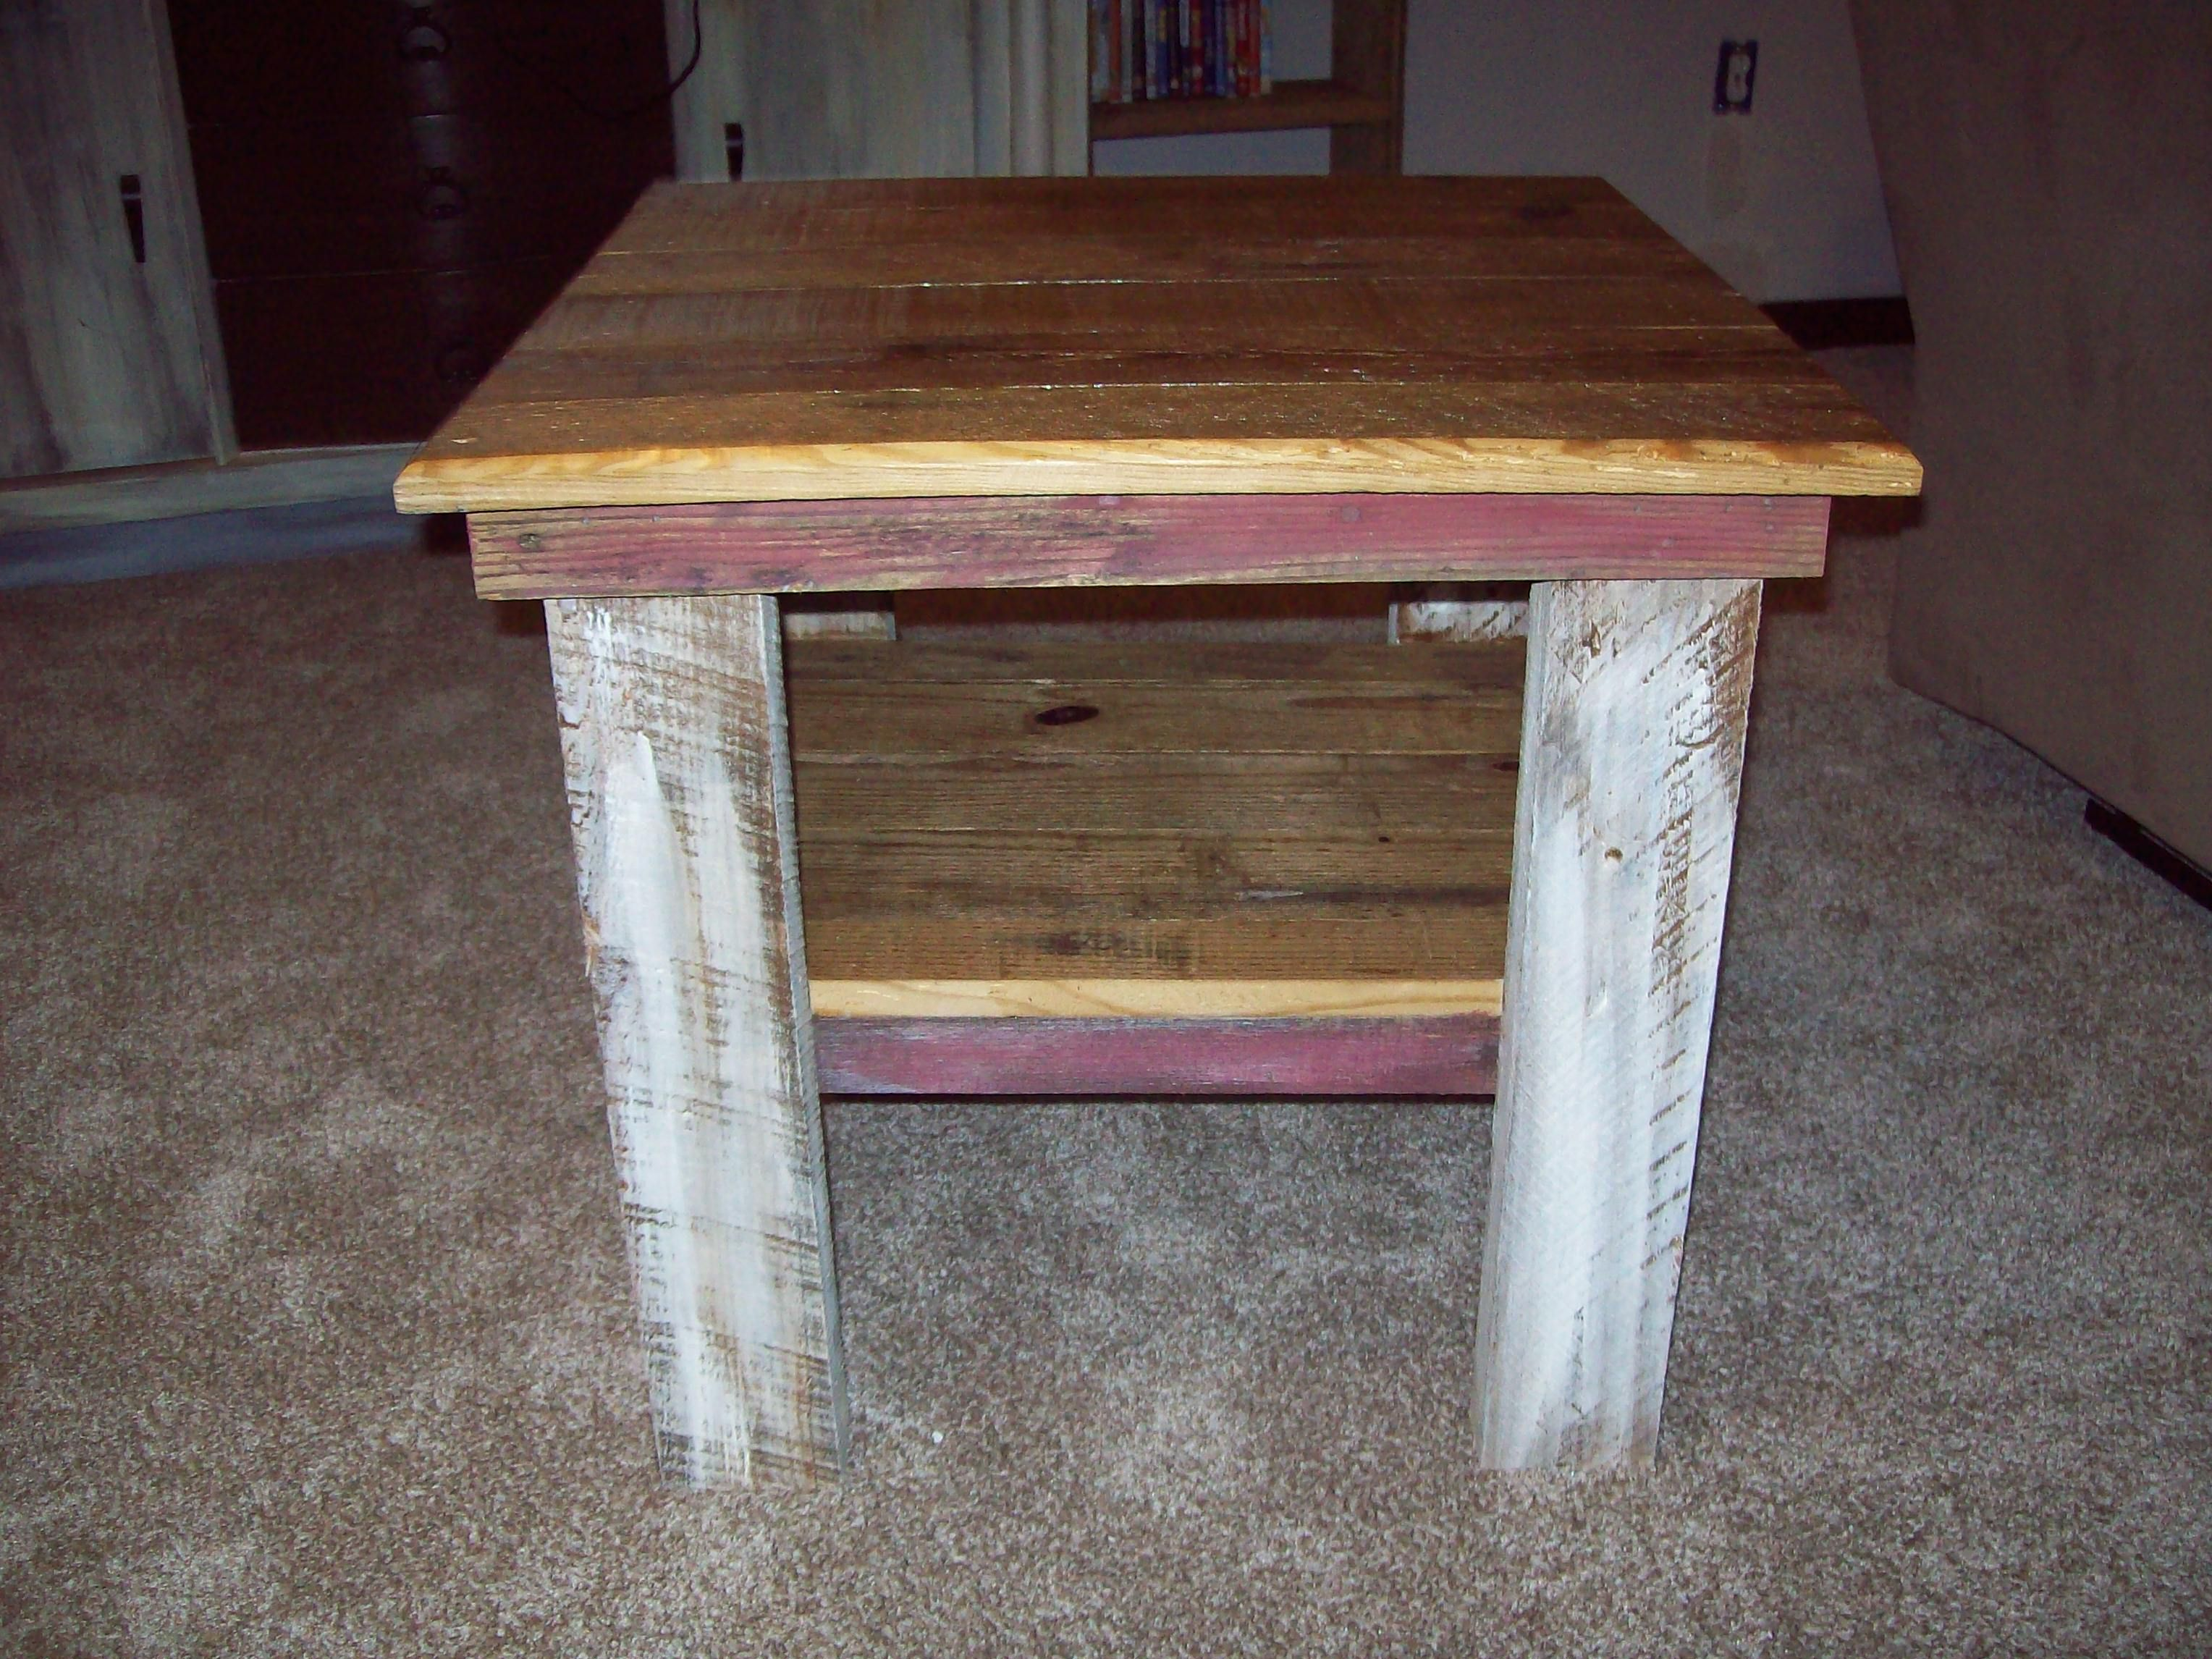 Coffee Table Reclaimed Real 2x4 For Legs Old Tongue And Groove Boards For Shelves Reclaimed From An Old Barn White Washe Home Decor Old Barn Coffee Table